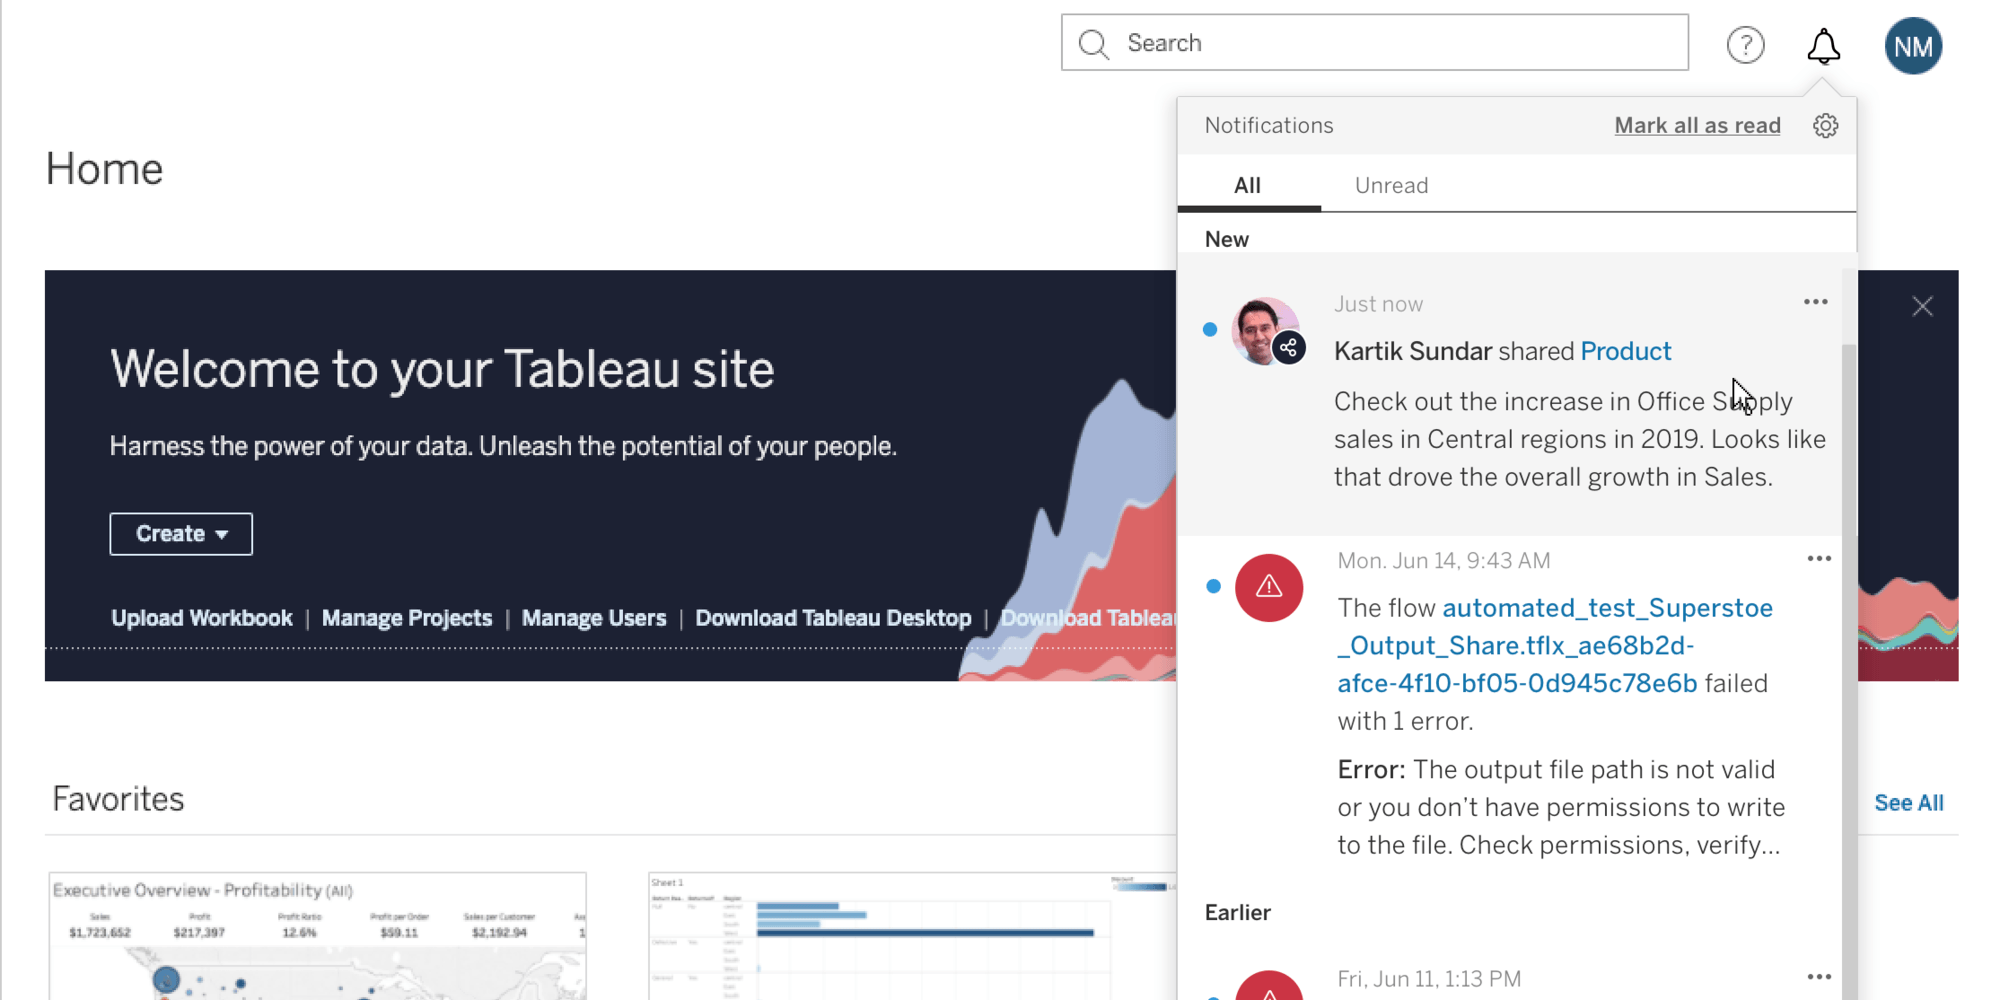 A list containing notifications is expanded from the top right corner of the Tableau Server or Online interface